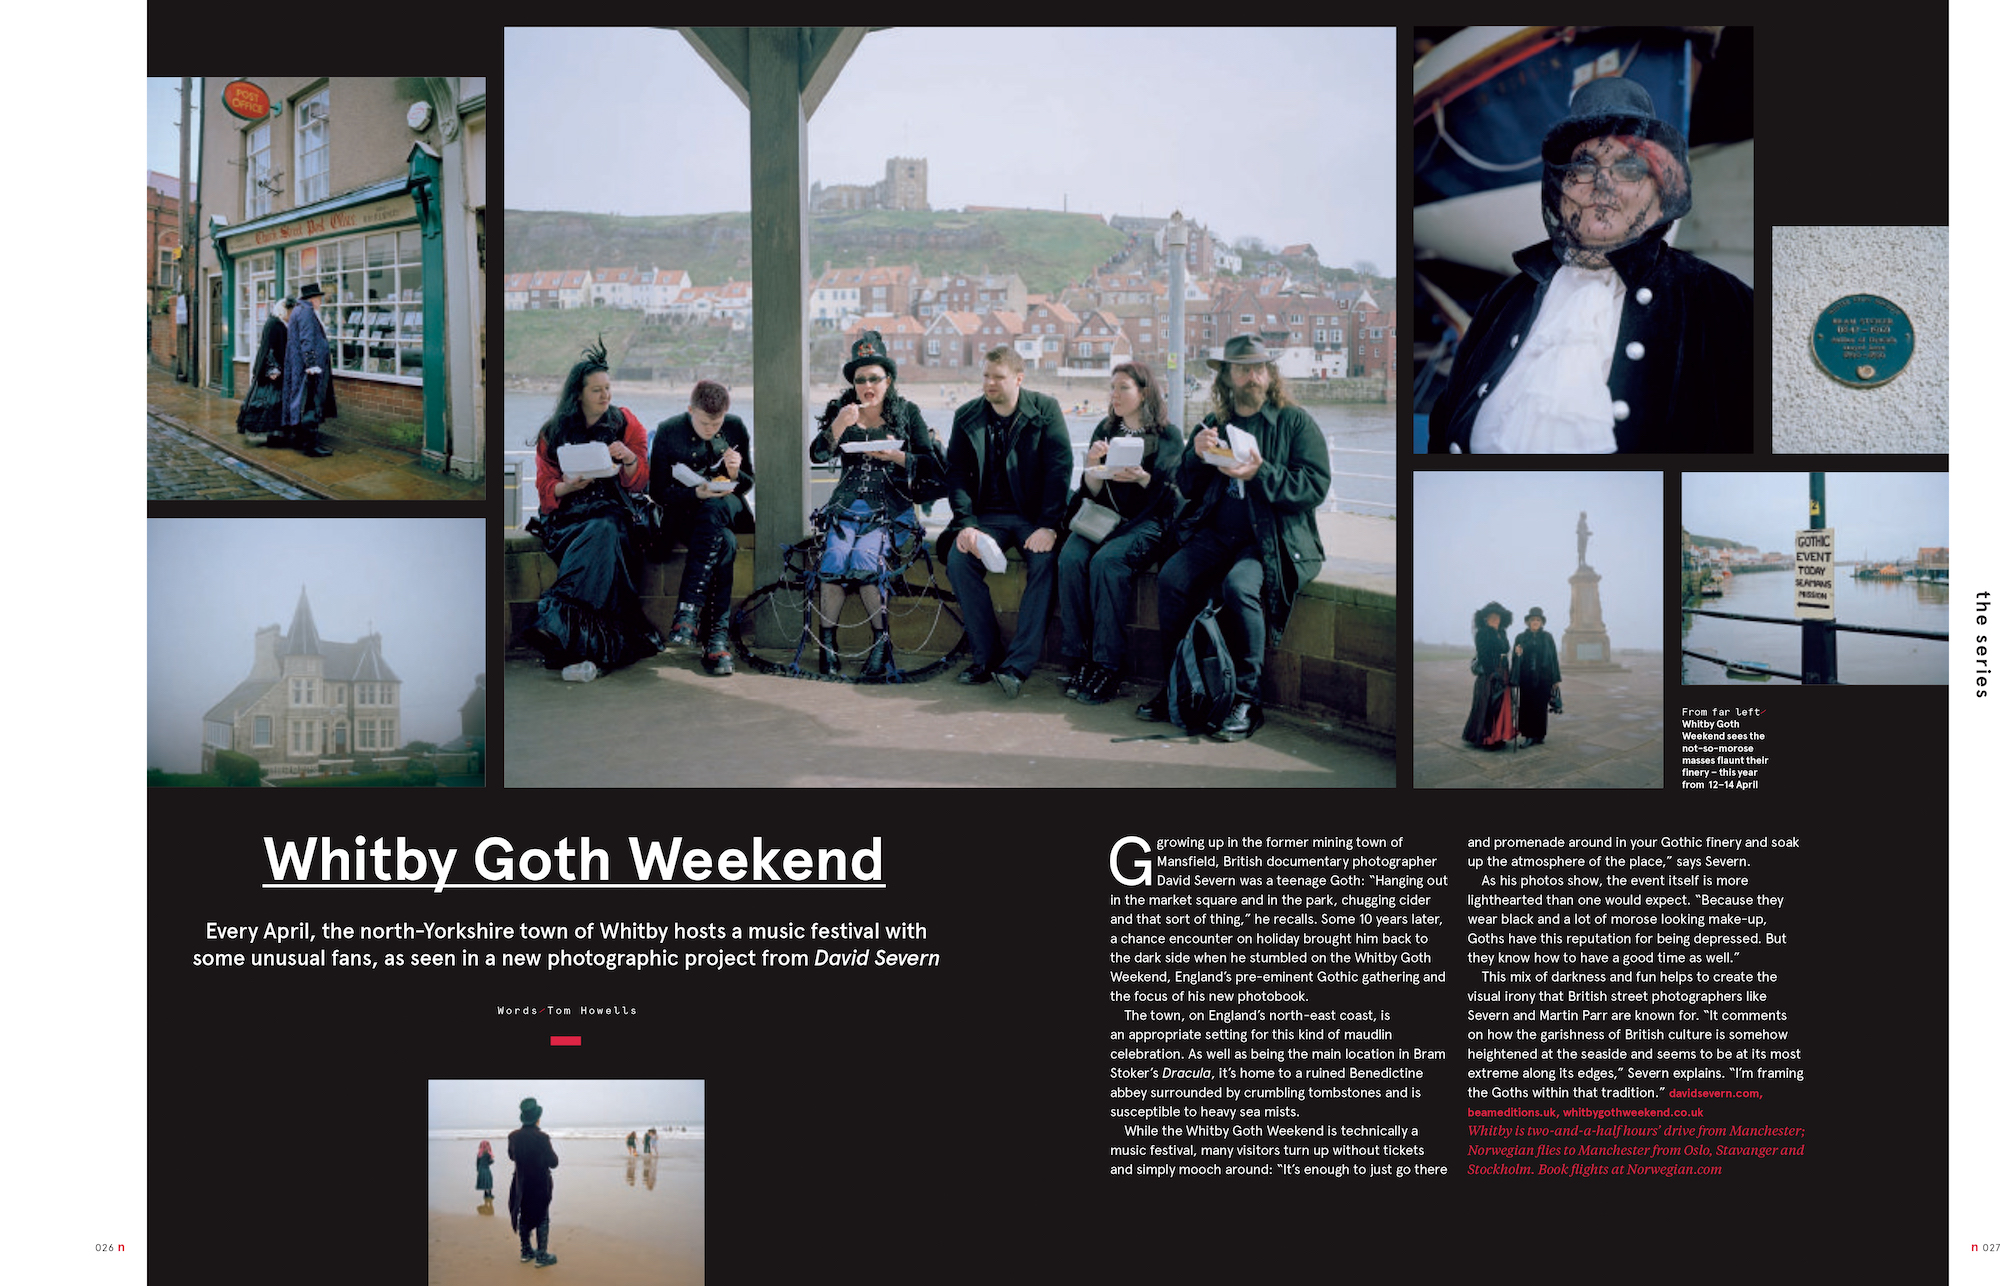 """Whitby Goth Weekend featured in """"N"""" Norwegian airline inflight magazine"""